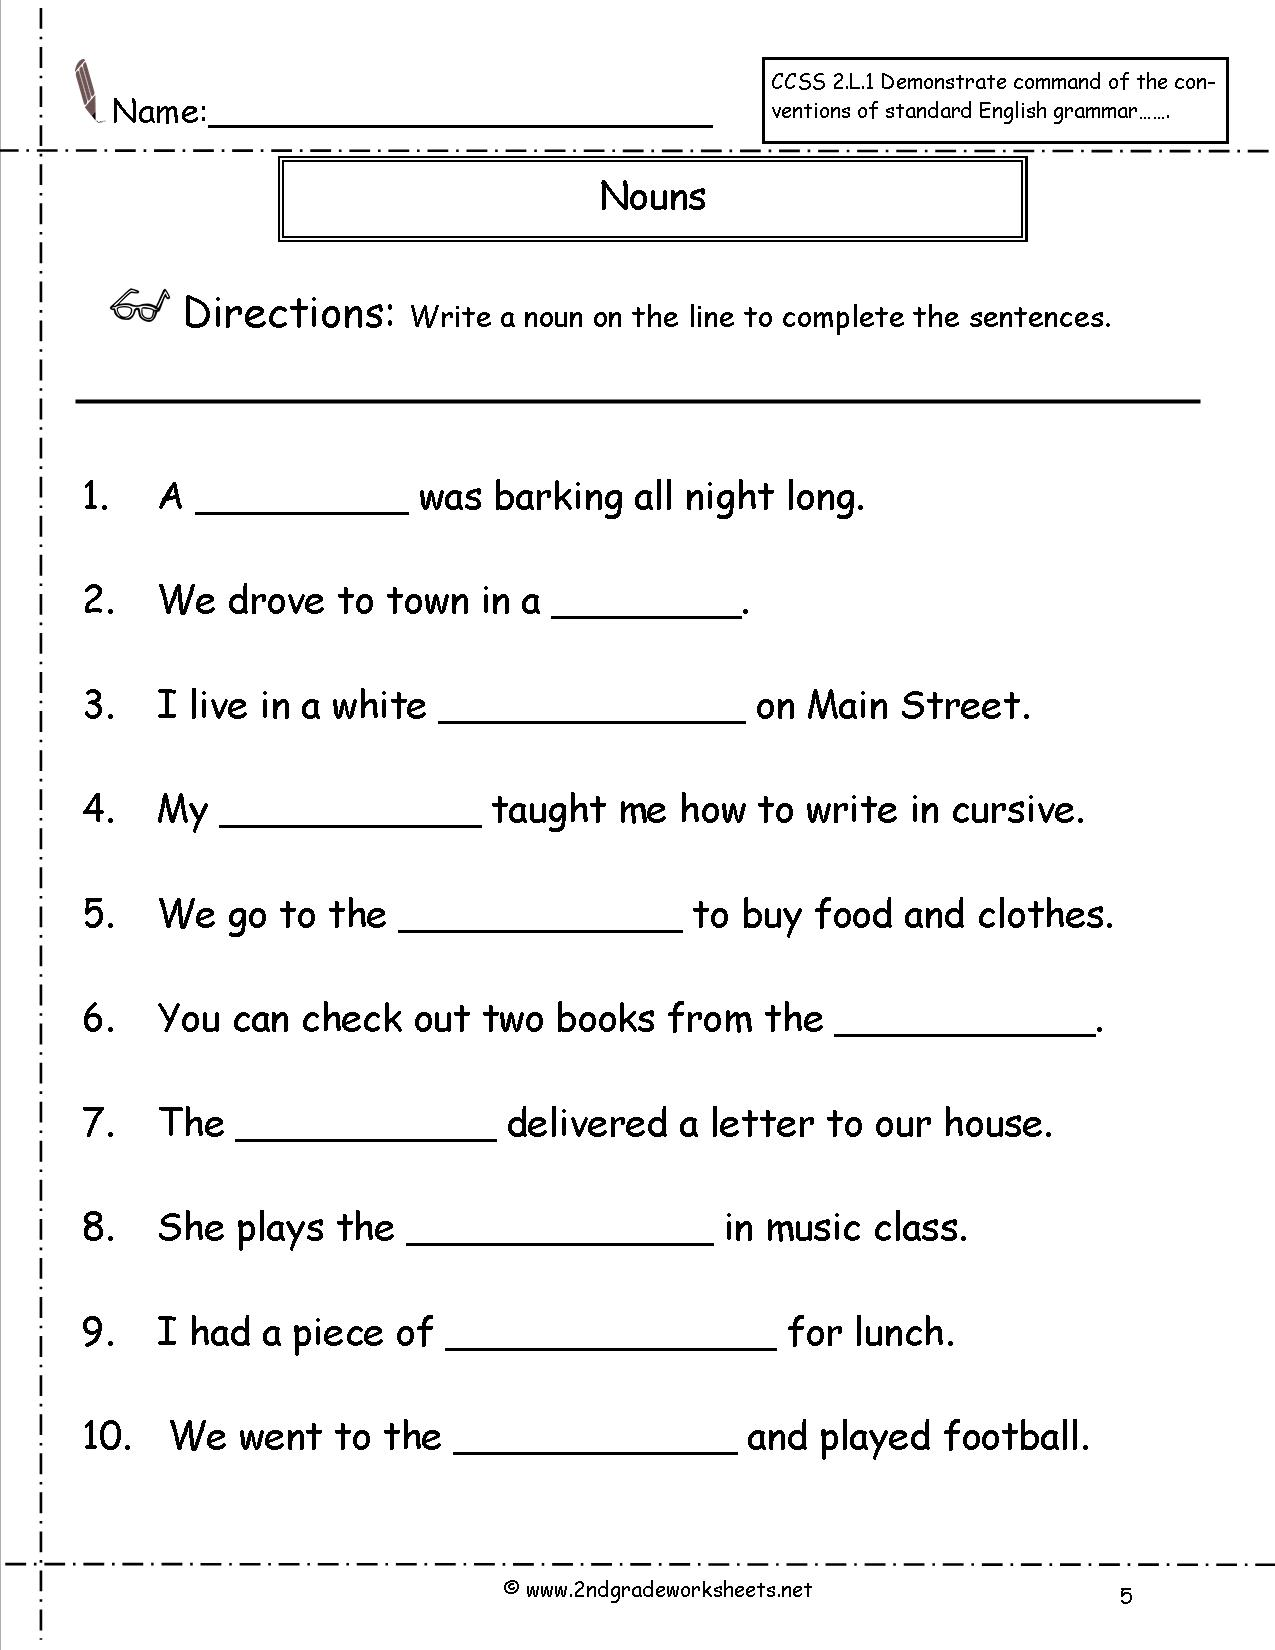 Noun Worksheets For 2nd Grade The Best Worksheets Image Collection